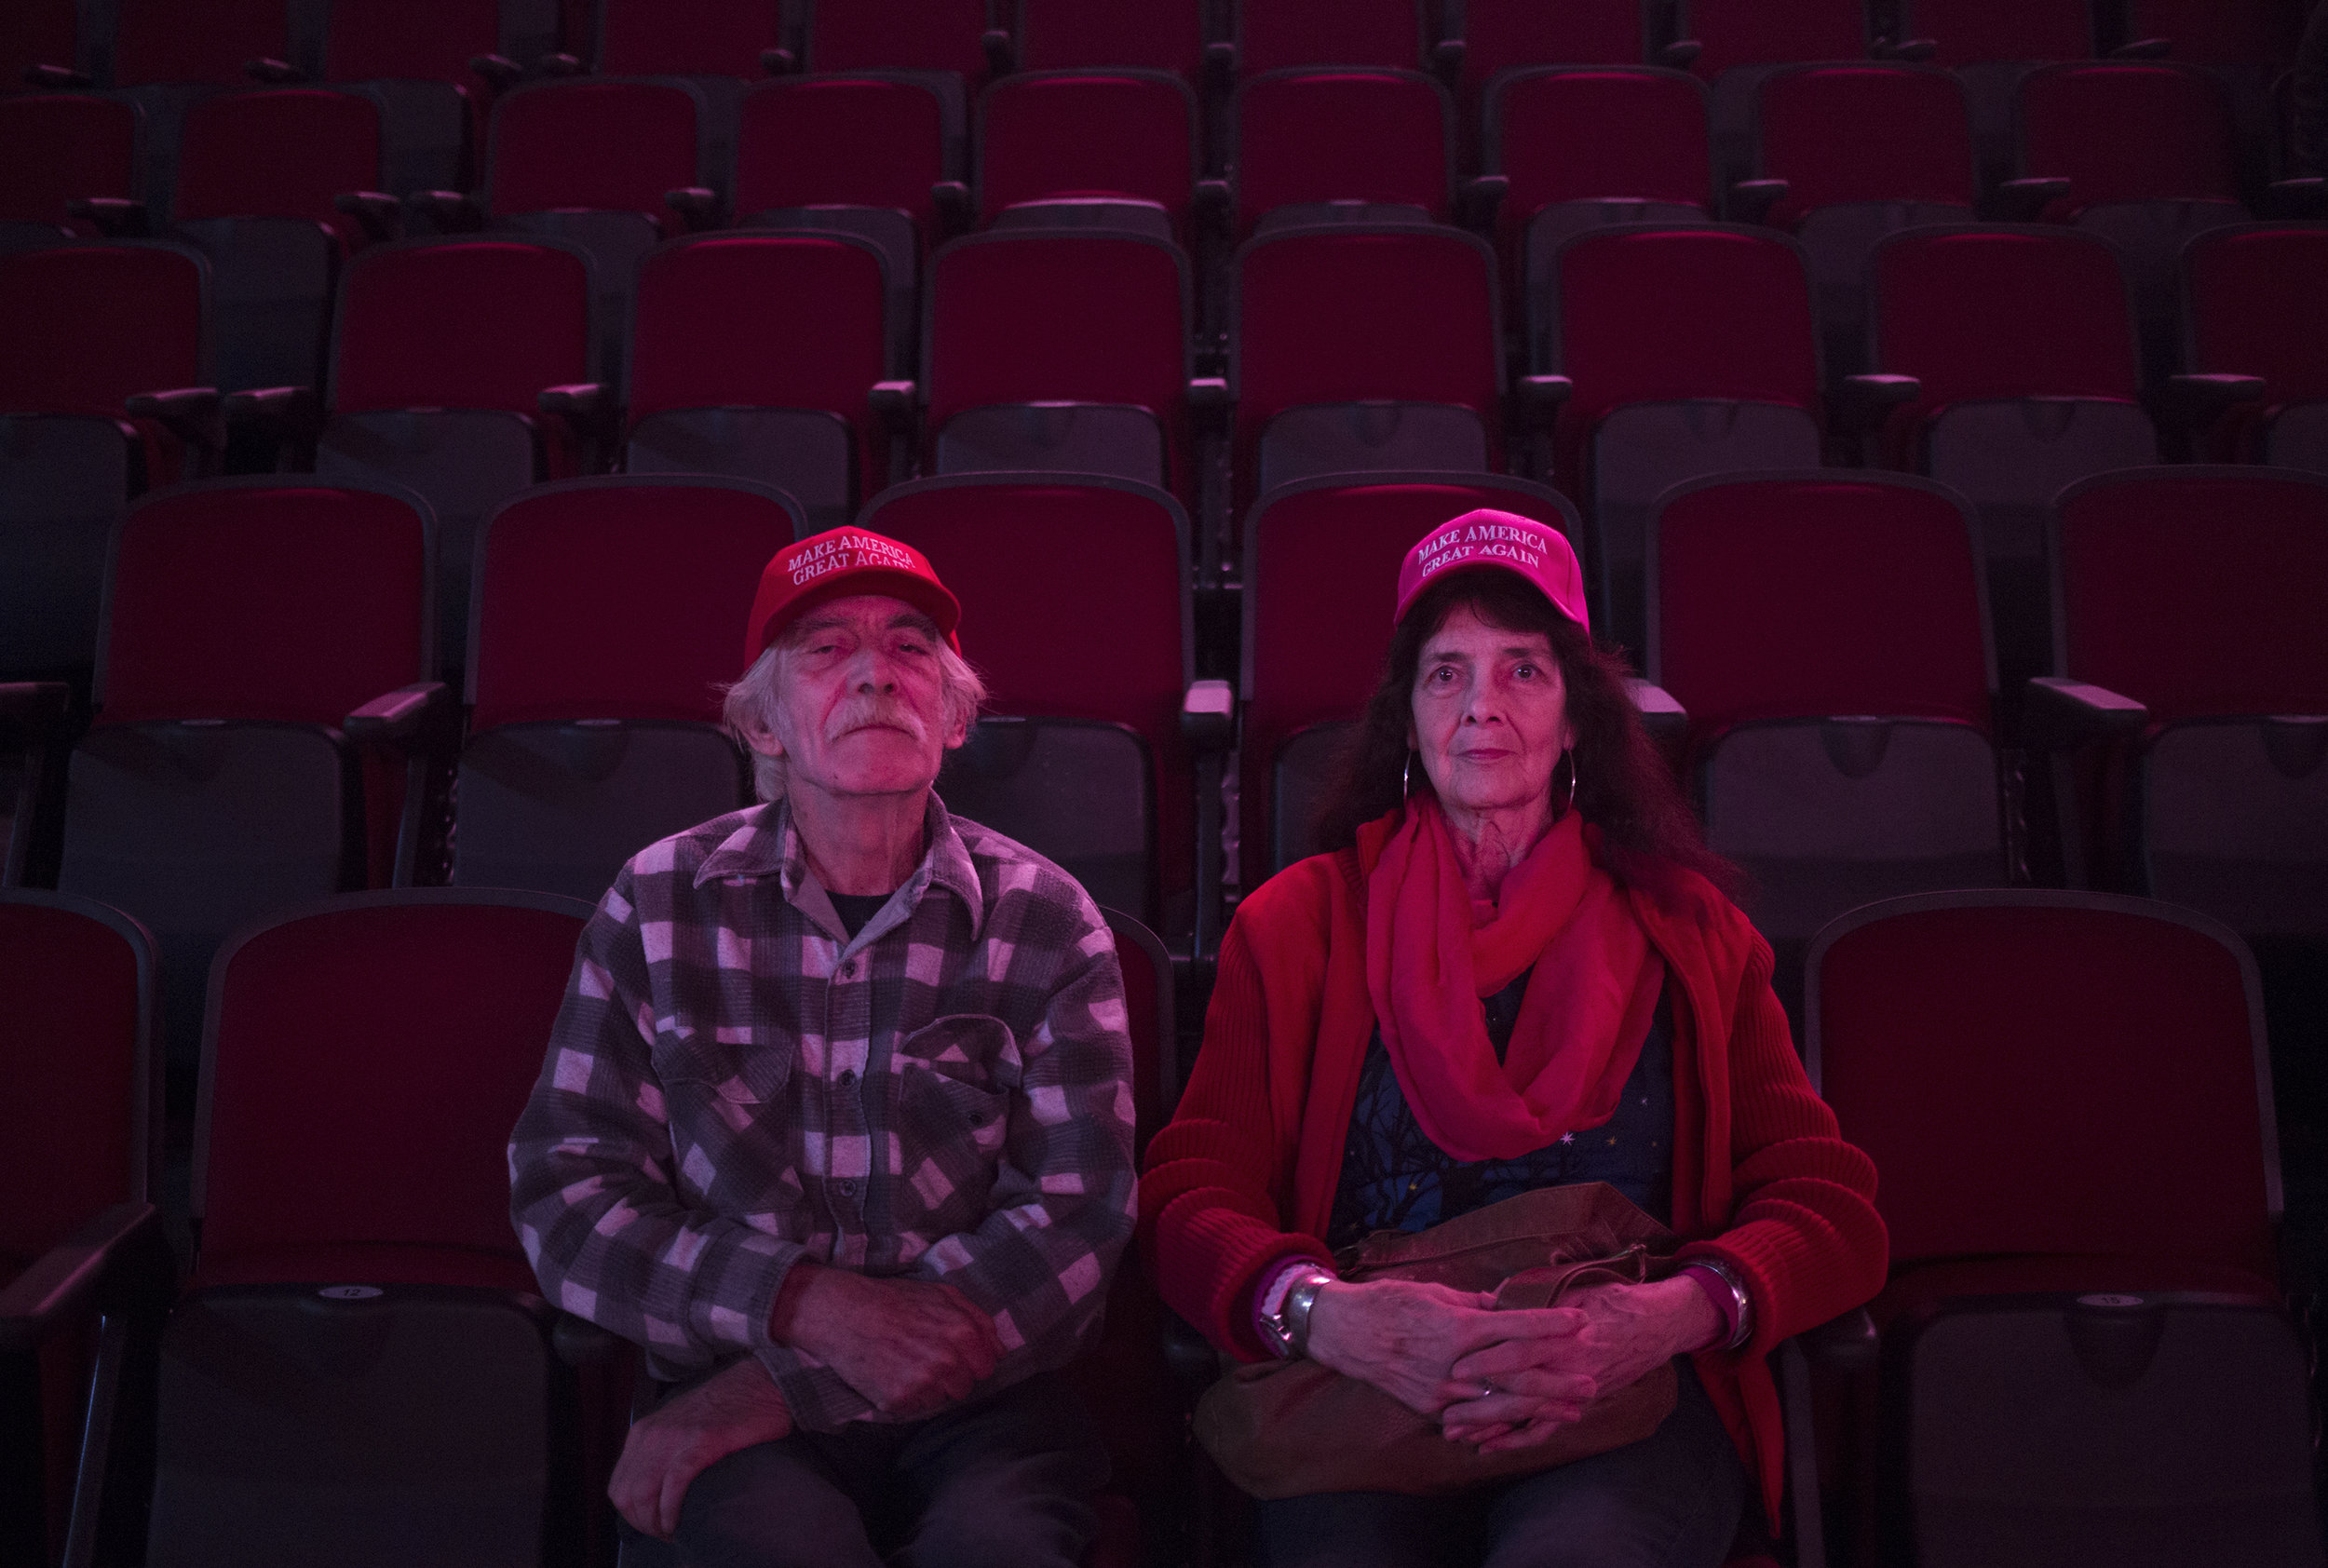 Don and Judy Harvey take their seats early to ensure a good view before the start of a Donald Trump rally in Bangor. During rallies in Maine Donald Trump spoke a lot about the loss of manufacturing work in America, a harsh reality for many voters of the mill towns in the second district.